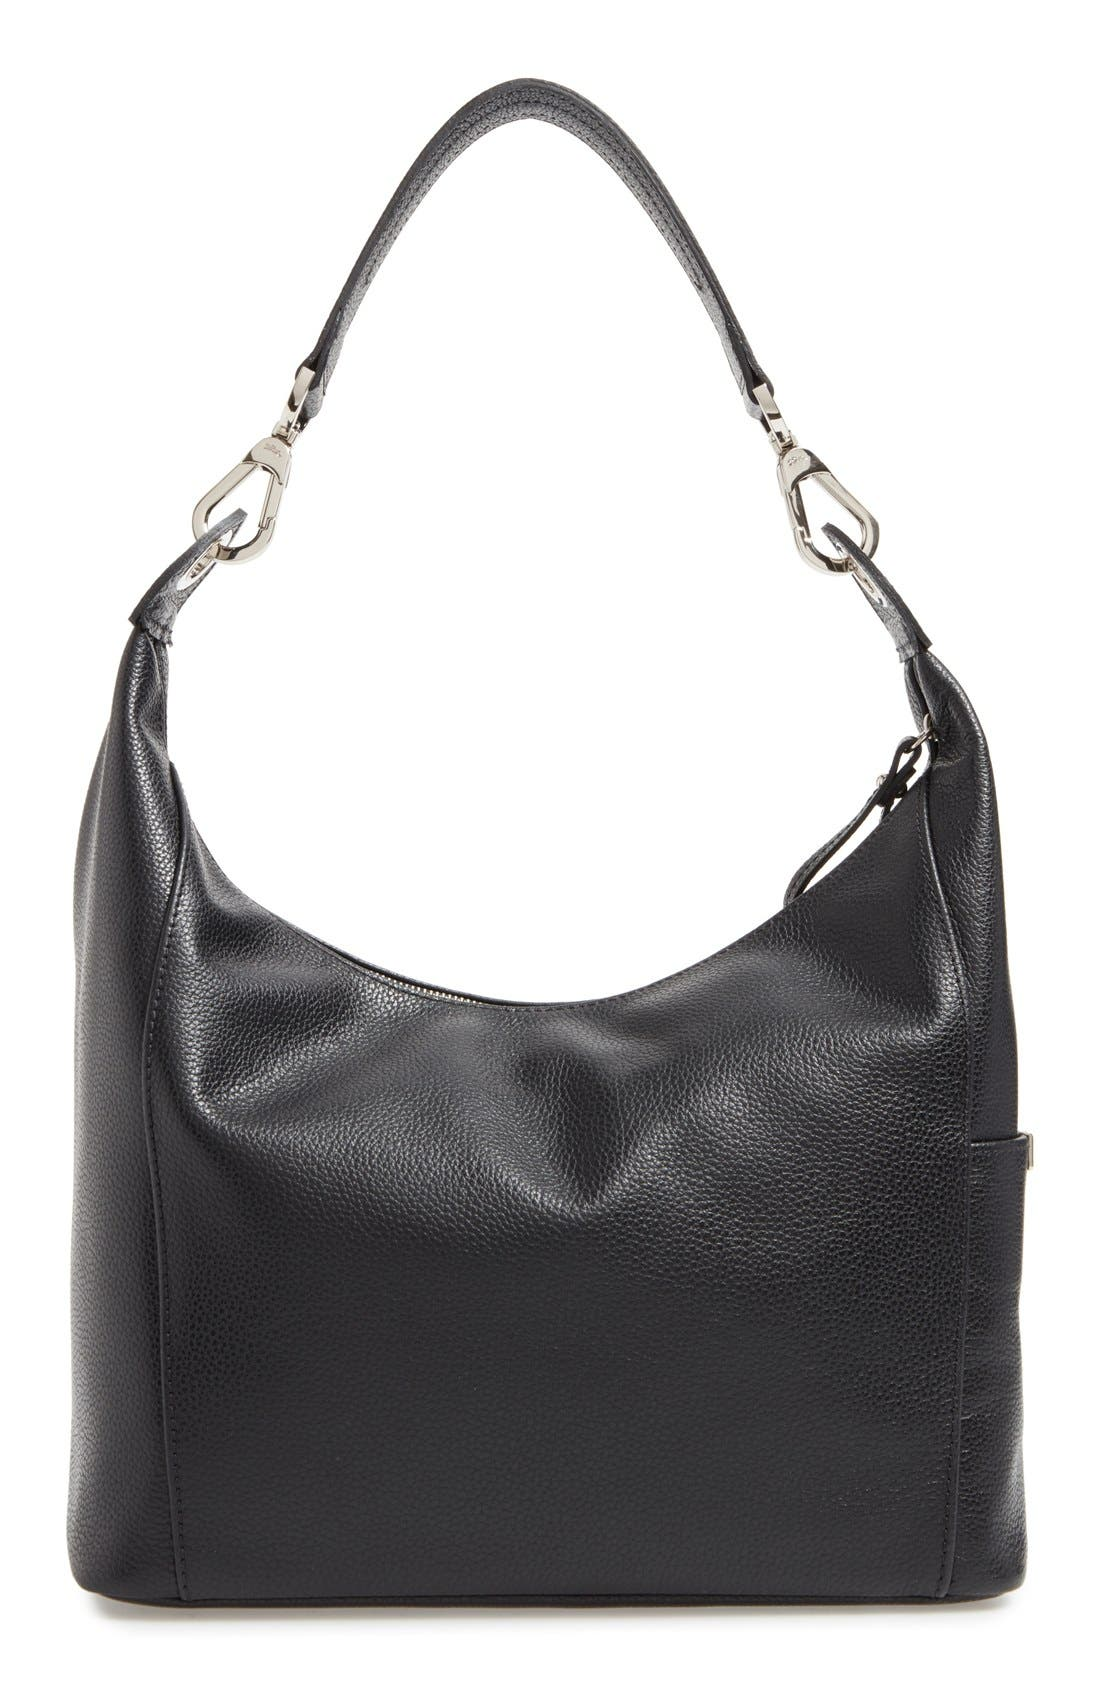 'Le Foulonne' Leather Hobo Bag,                             Alternate thumbnail 3, color,                             Black